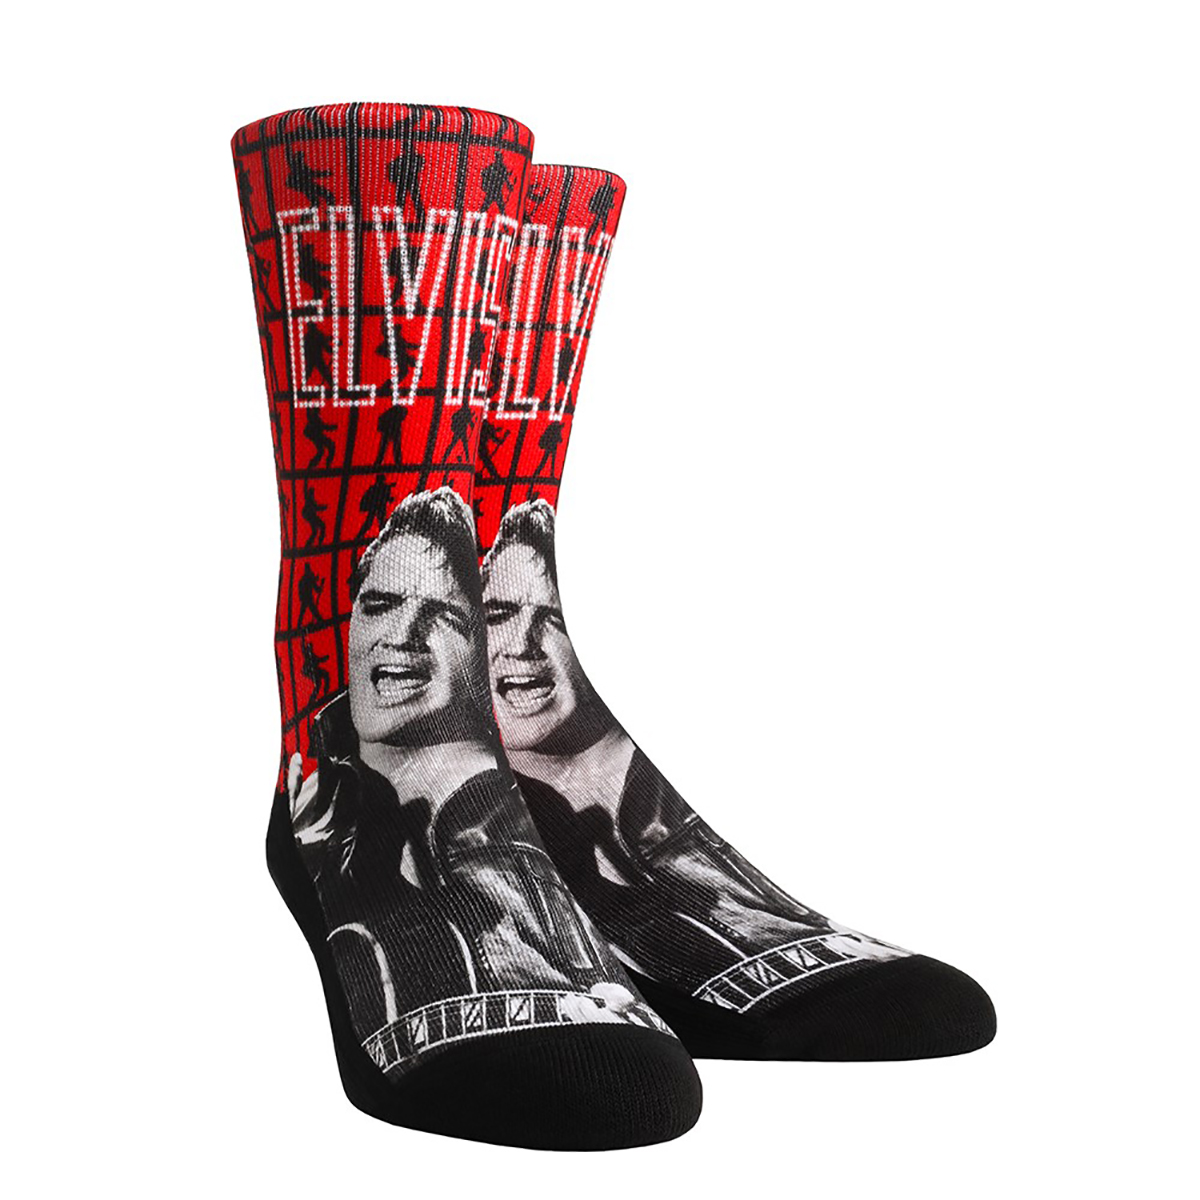 Elvis Presley Comeback Special Lights Socks - Adult